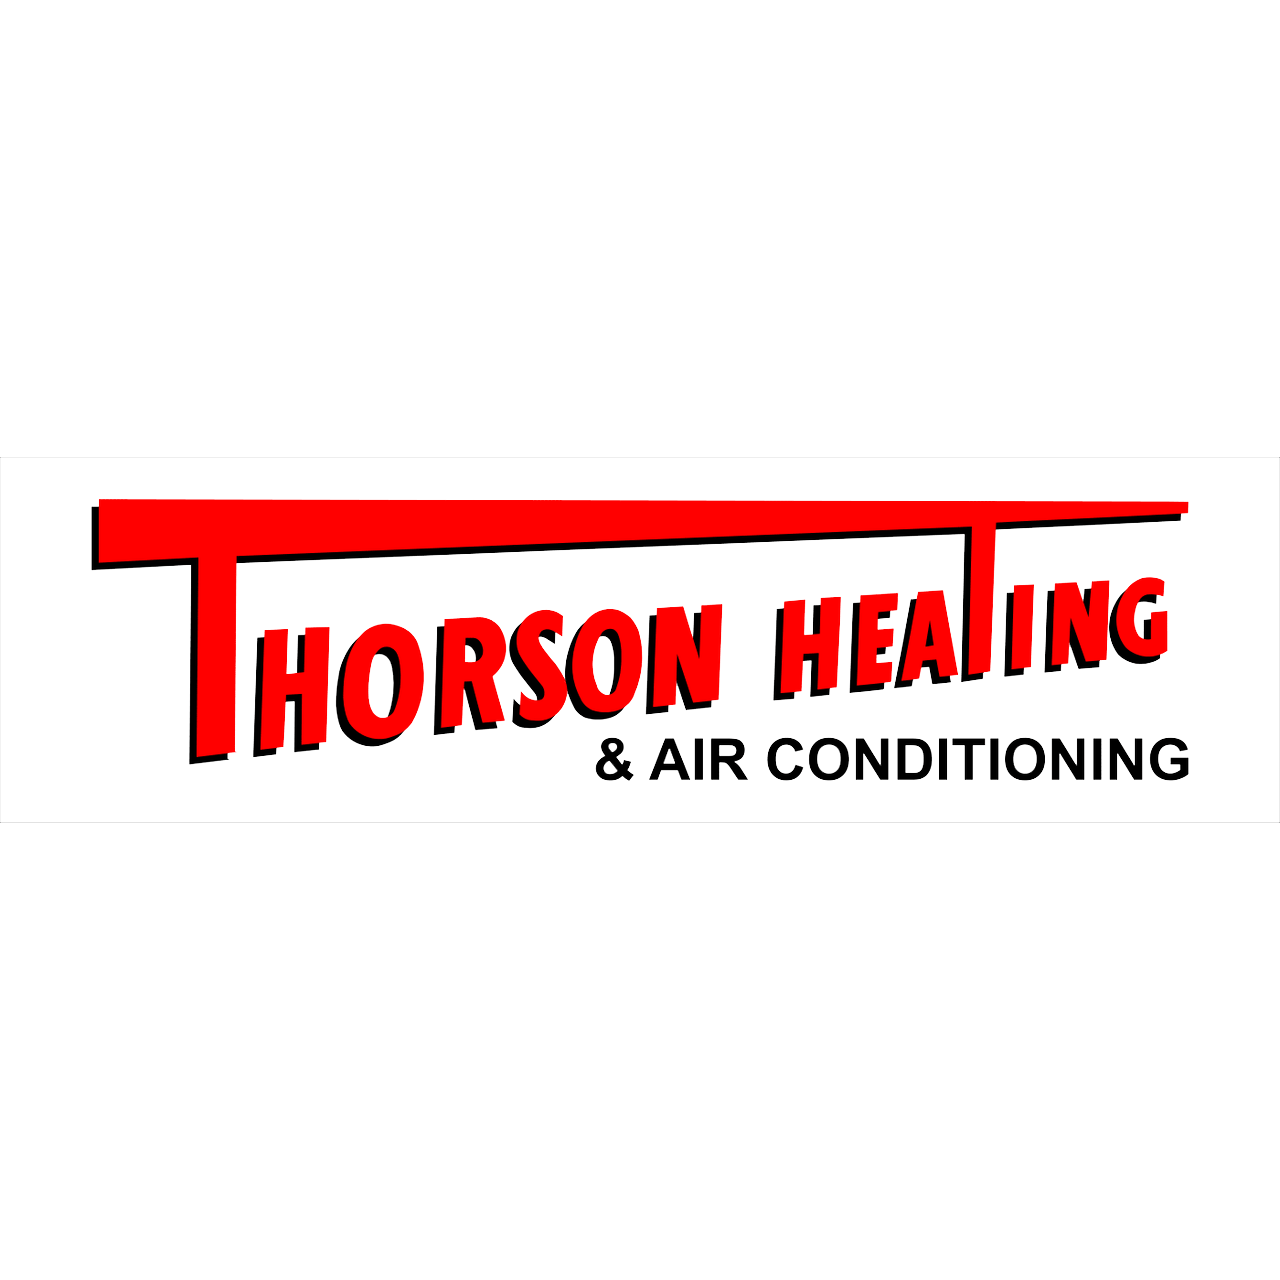 Thorson Heating & Air Conditioning